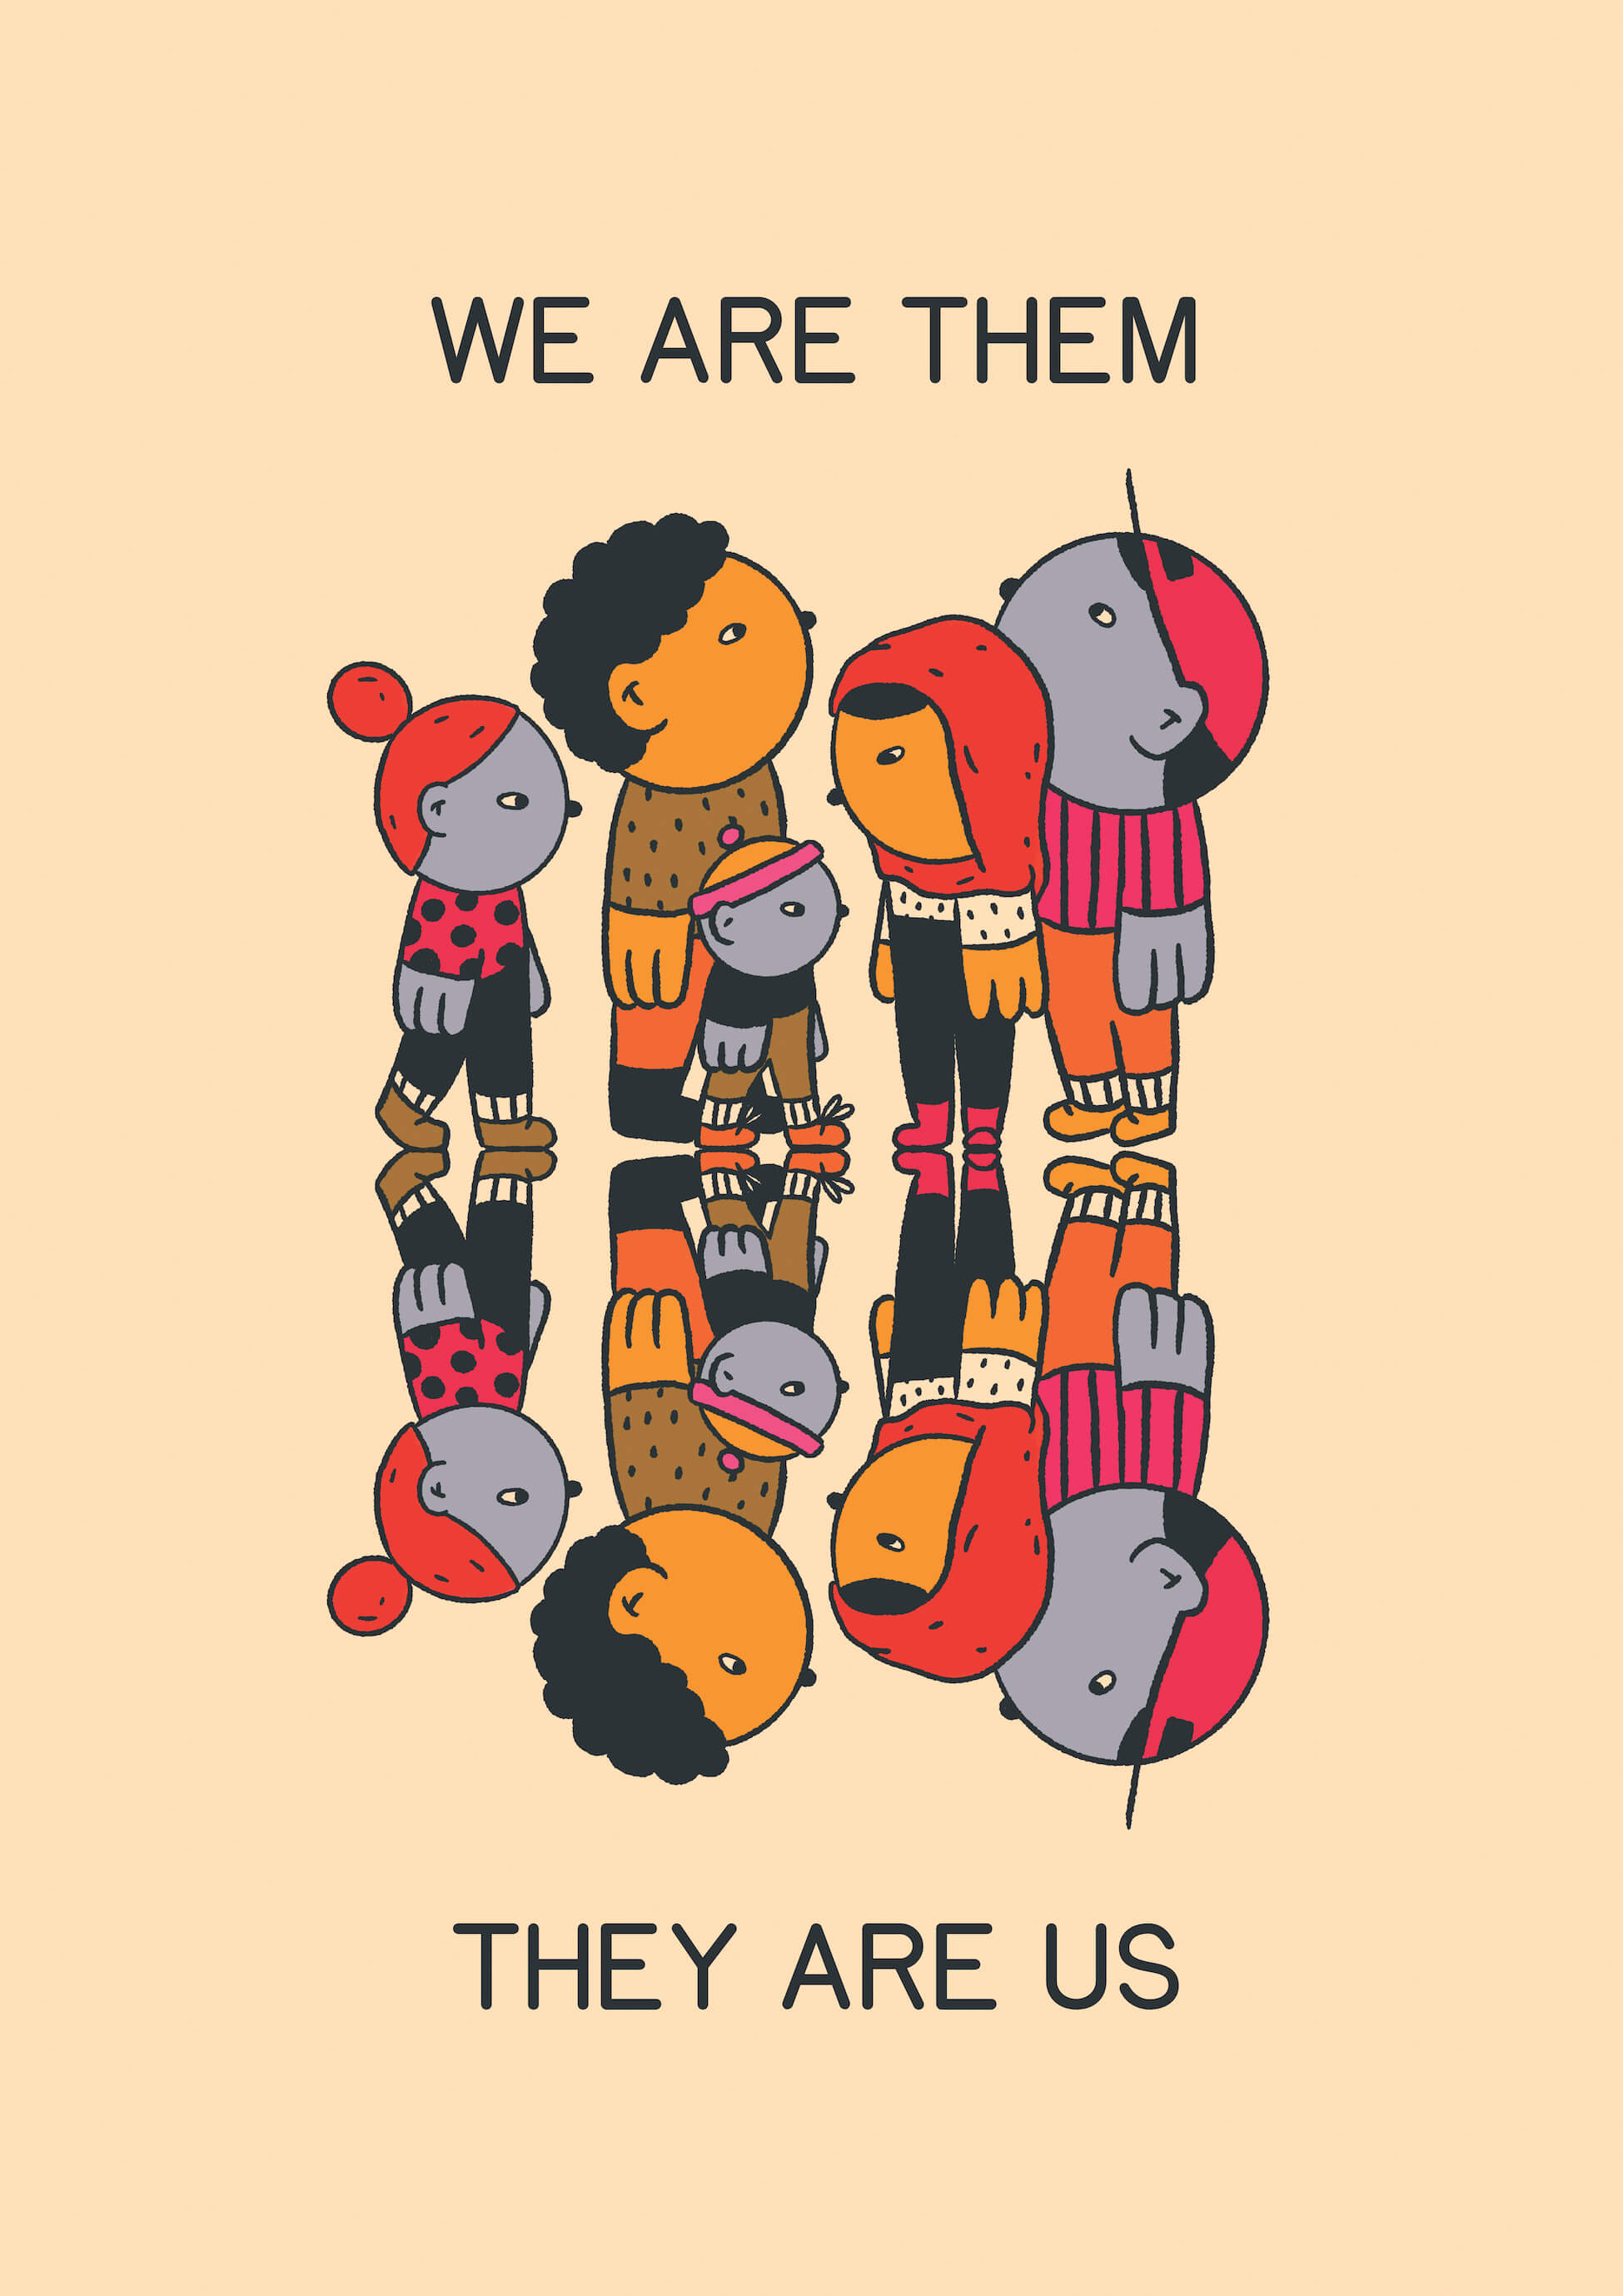 We Are Them - They Are Us main image